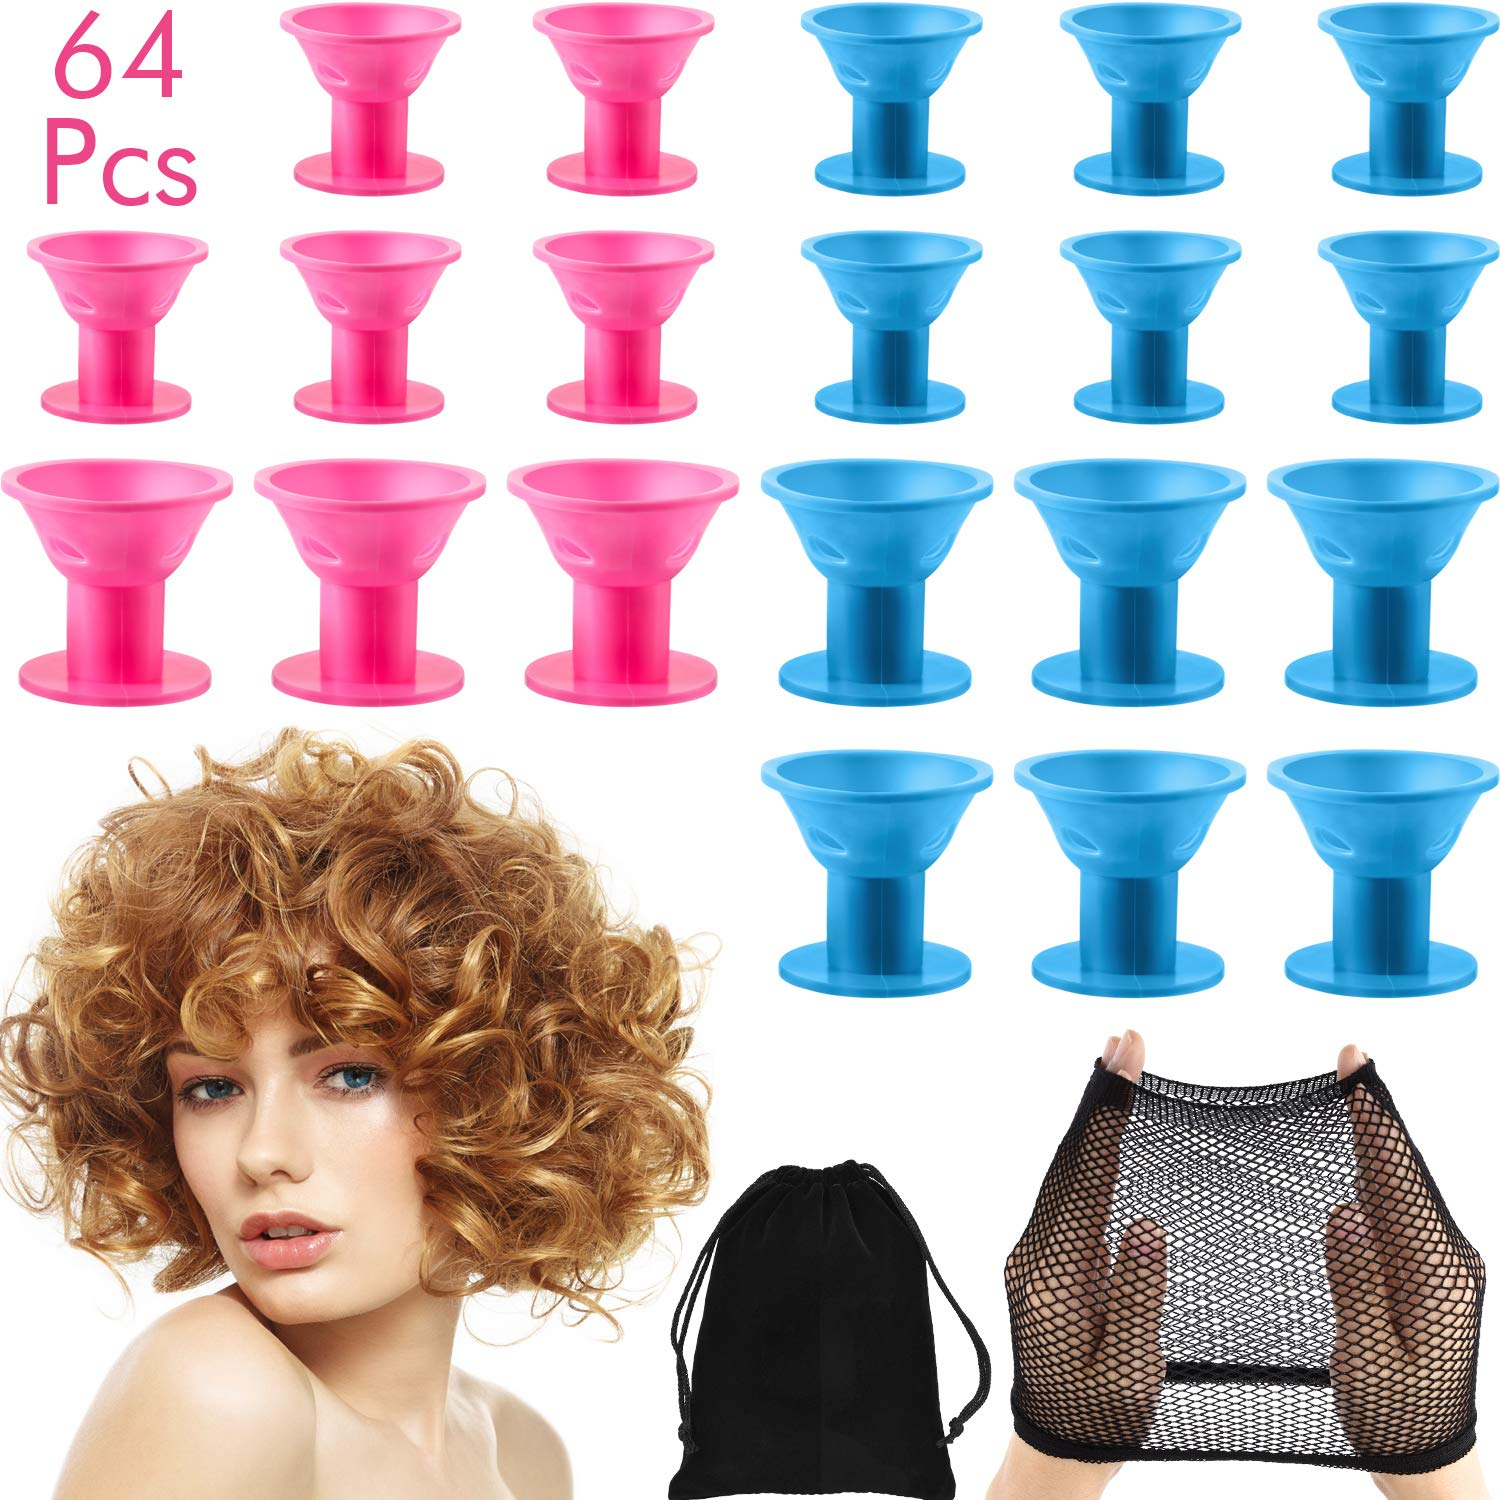 64 Pieces Silicone Hair Curlers Set, 30 Pieces Large Silicone Hair Rollers and 30 Pieces Small Silicone Hair Rollers with Net Cap and Storage Bag by Chinco